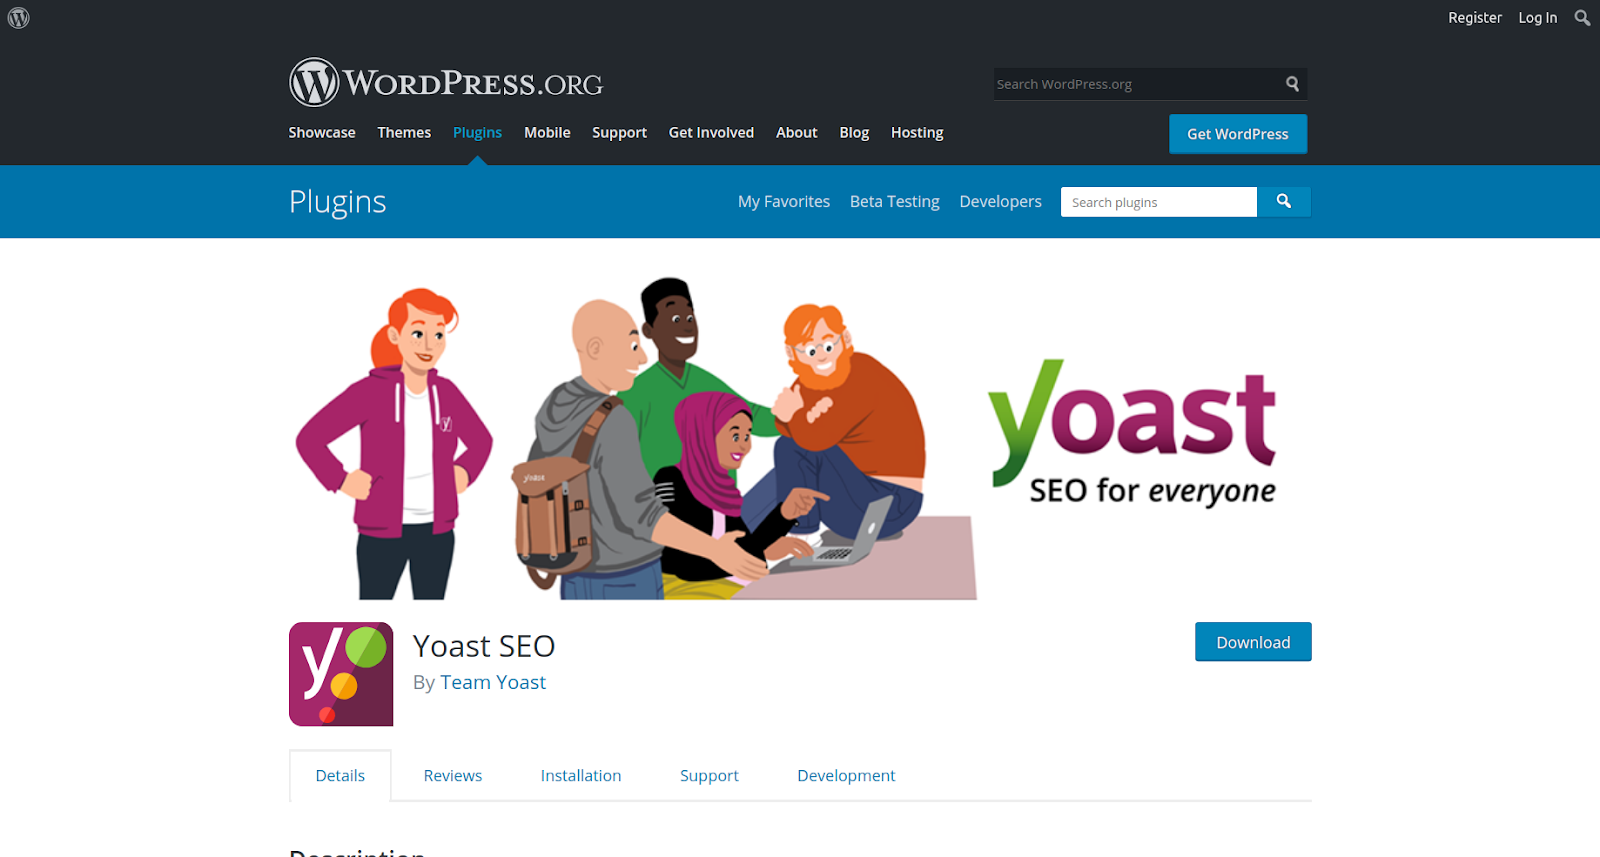 yoast wordpress seo plugin page